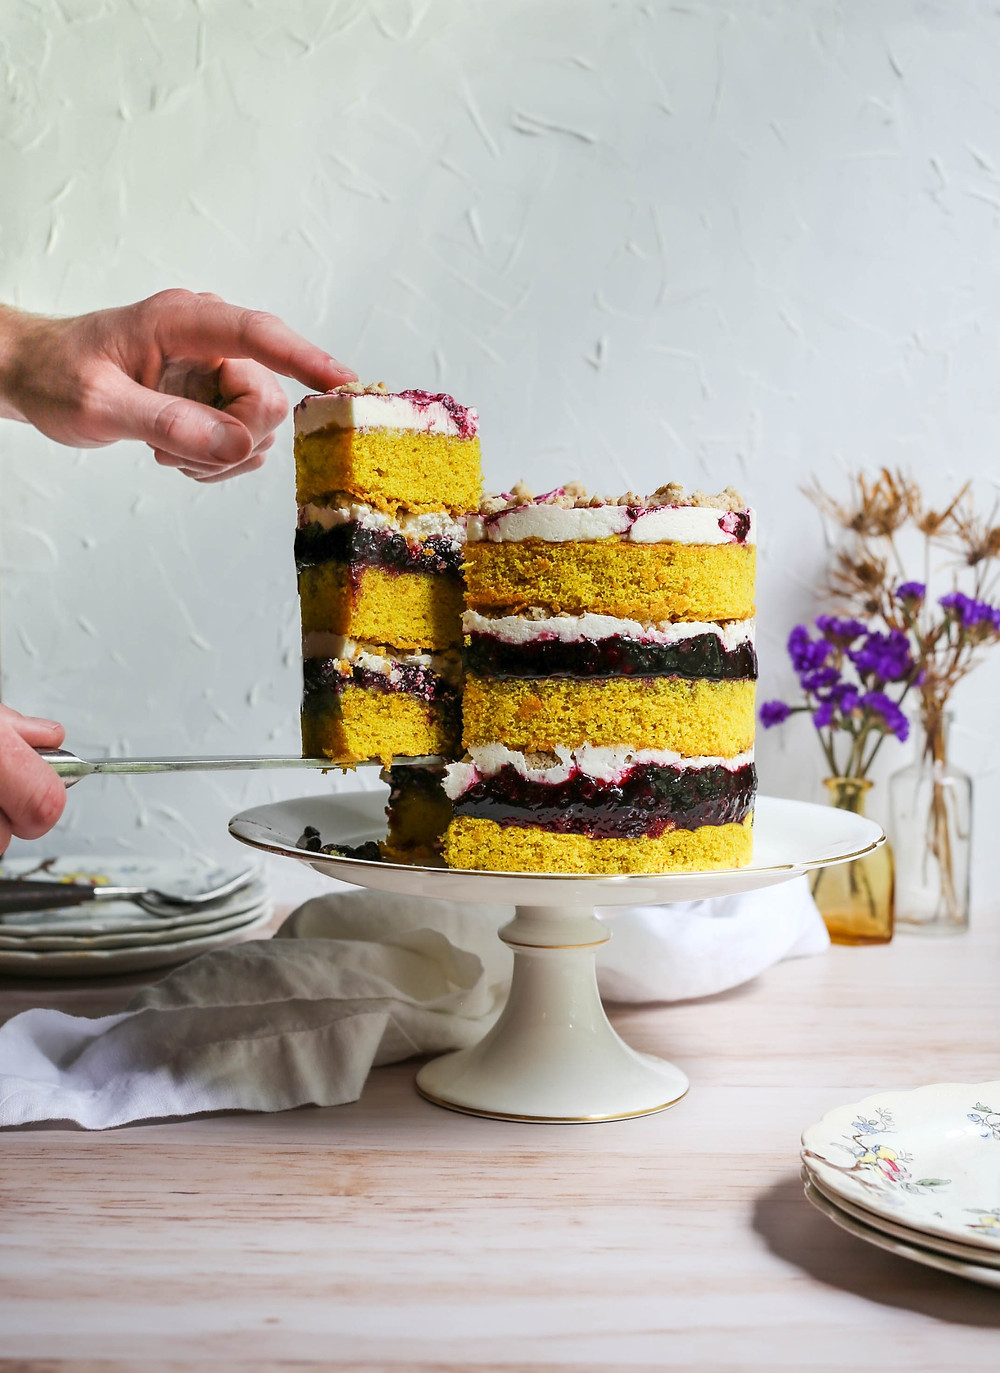 A person carefully removing a large slice of cake, exposing more of the layers.